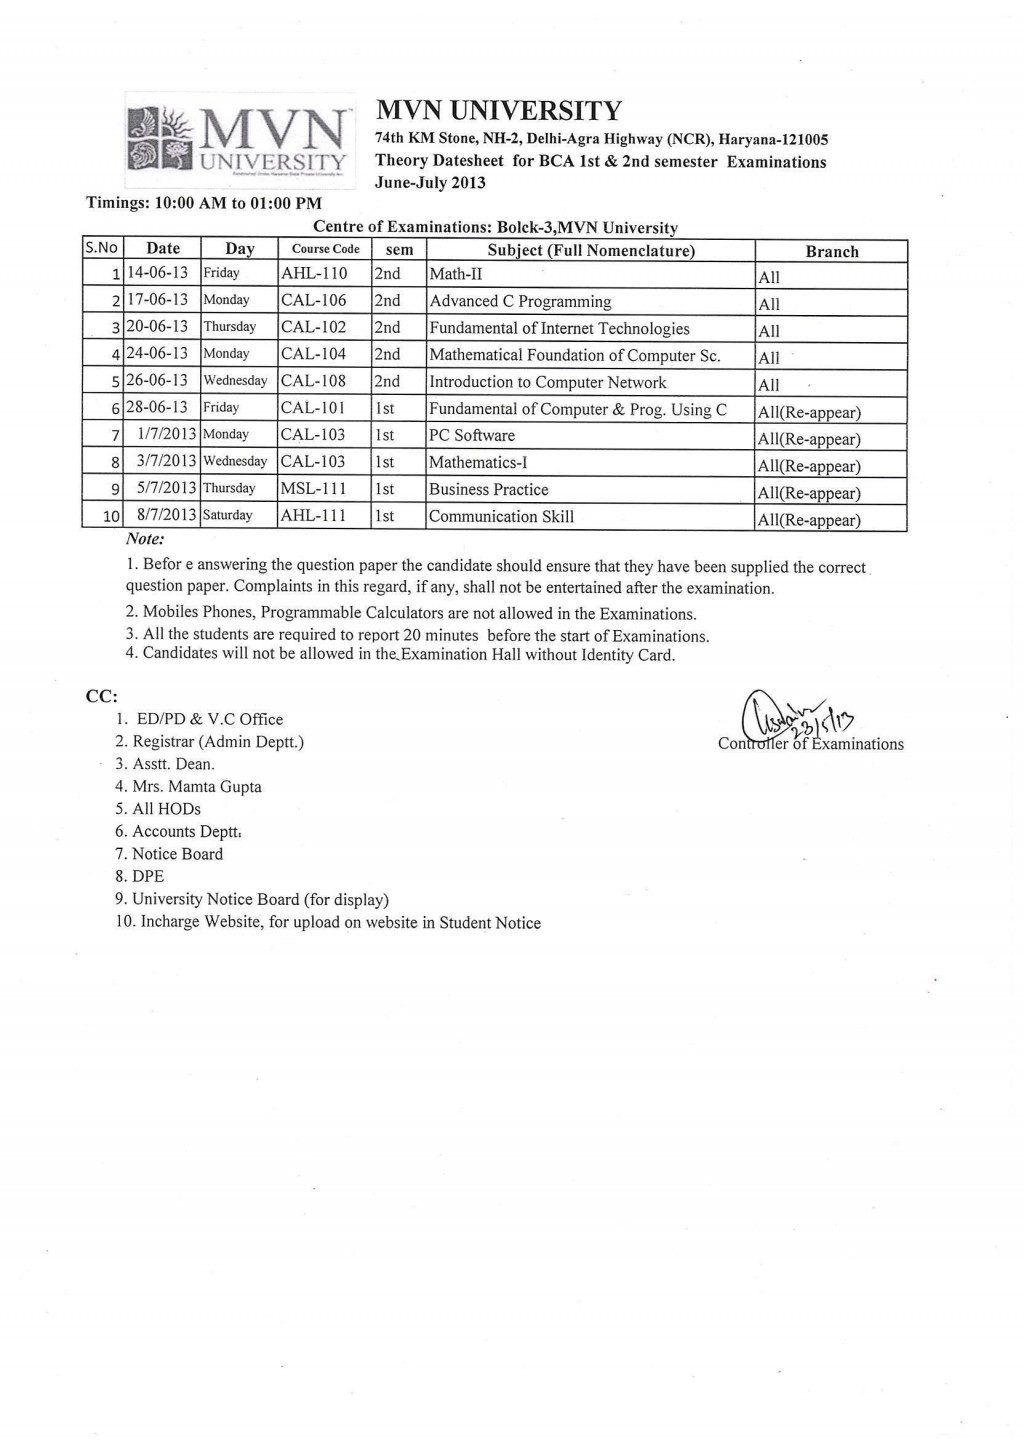 018 Theory Datesheet For 1st And 2nd Sem Illegal Immigration Essay Stunning Title Persuasive Topics Argumentative Thesis Large